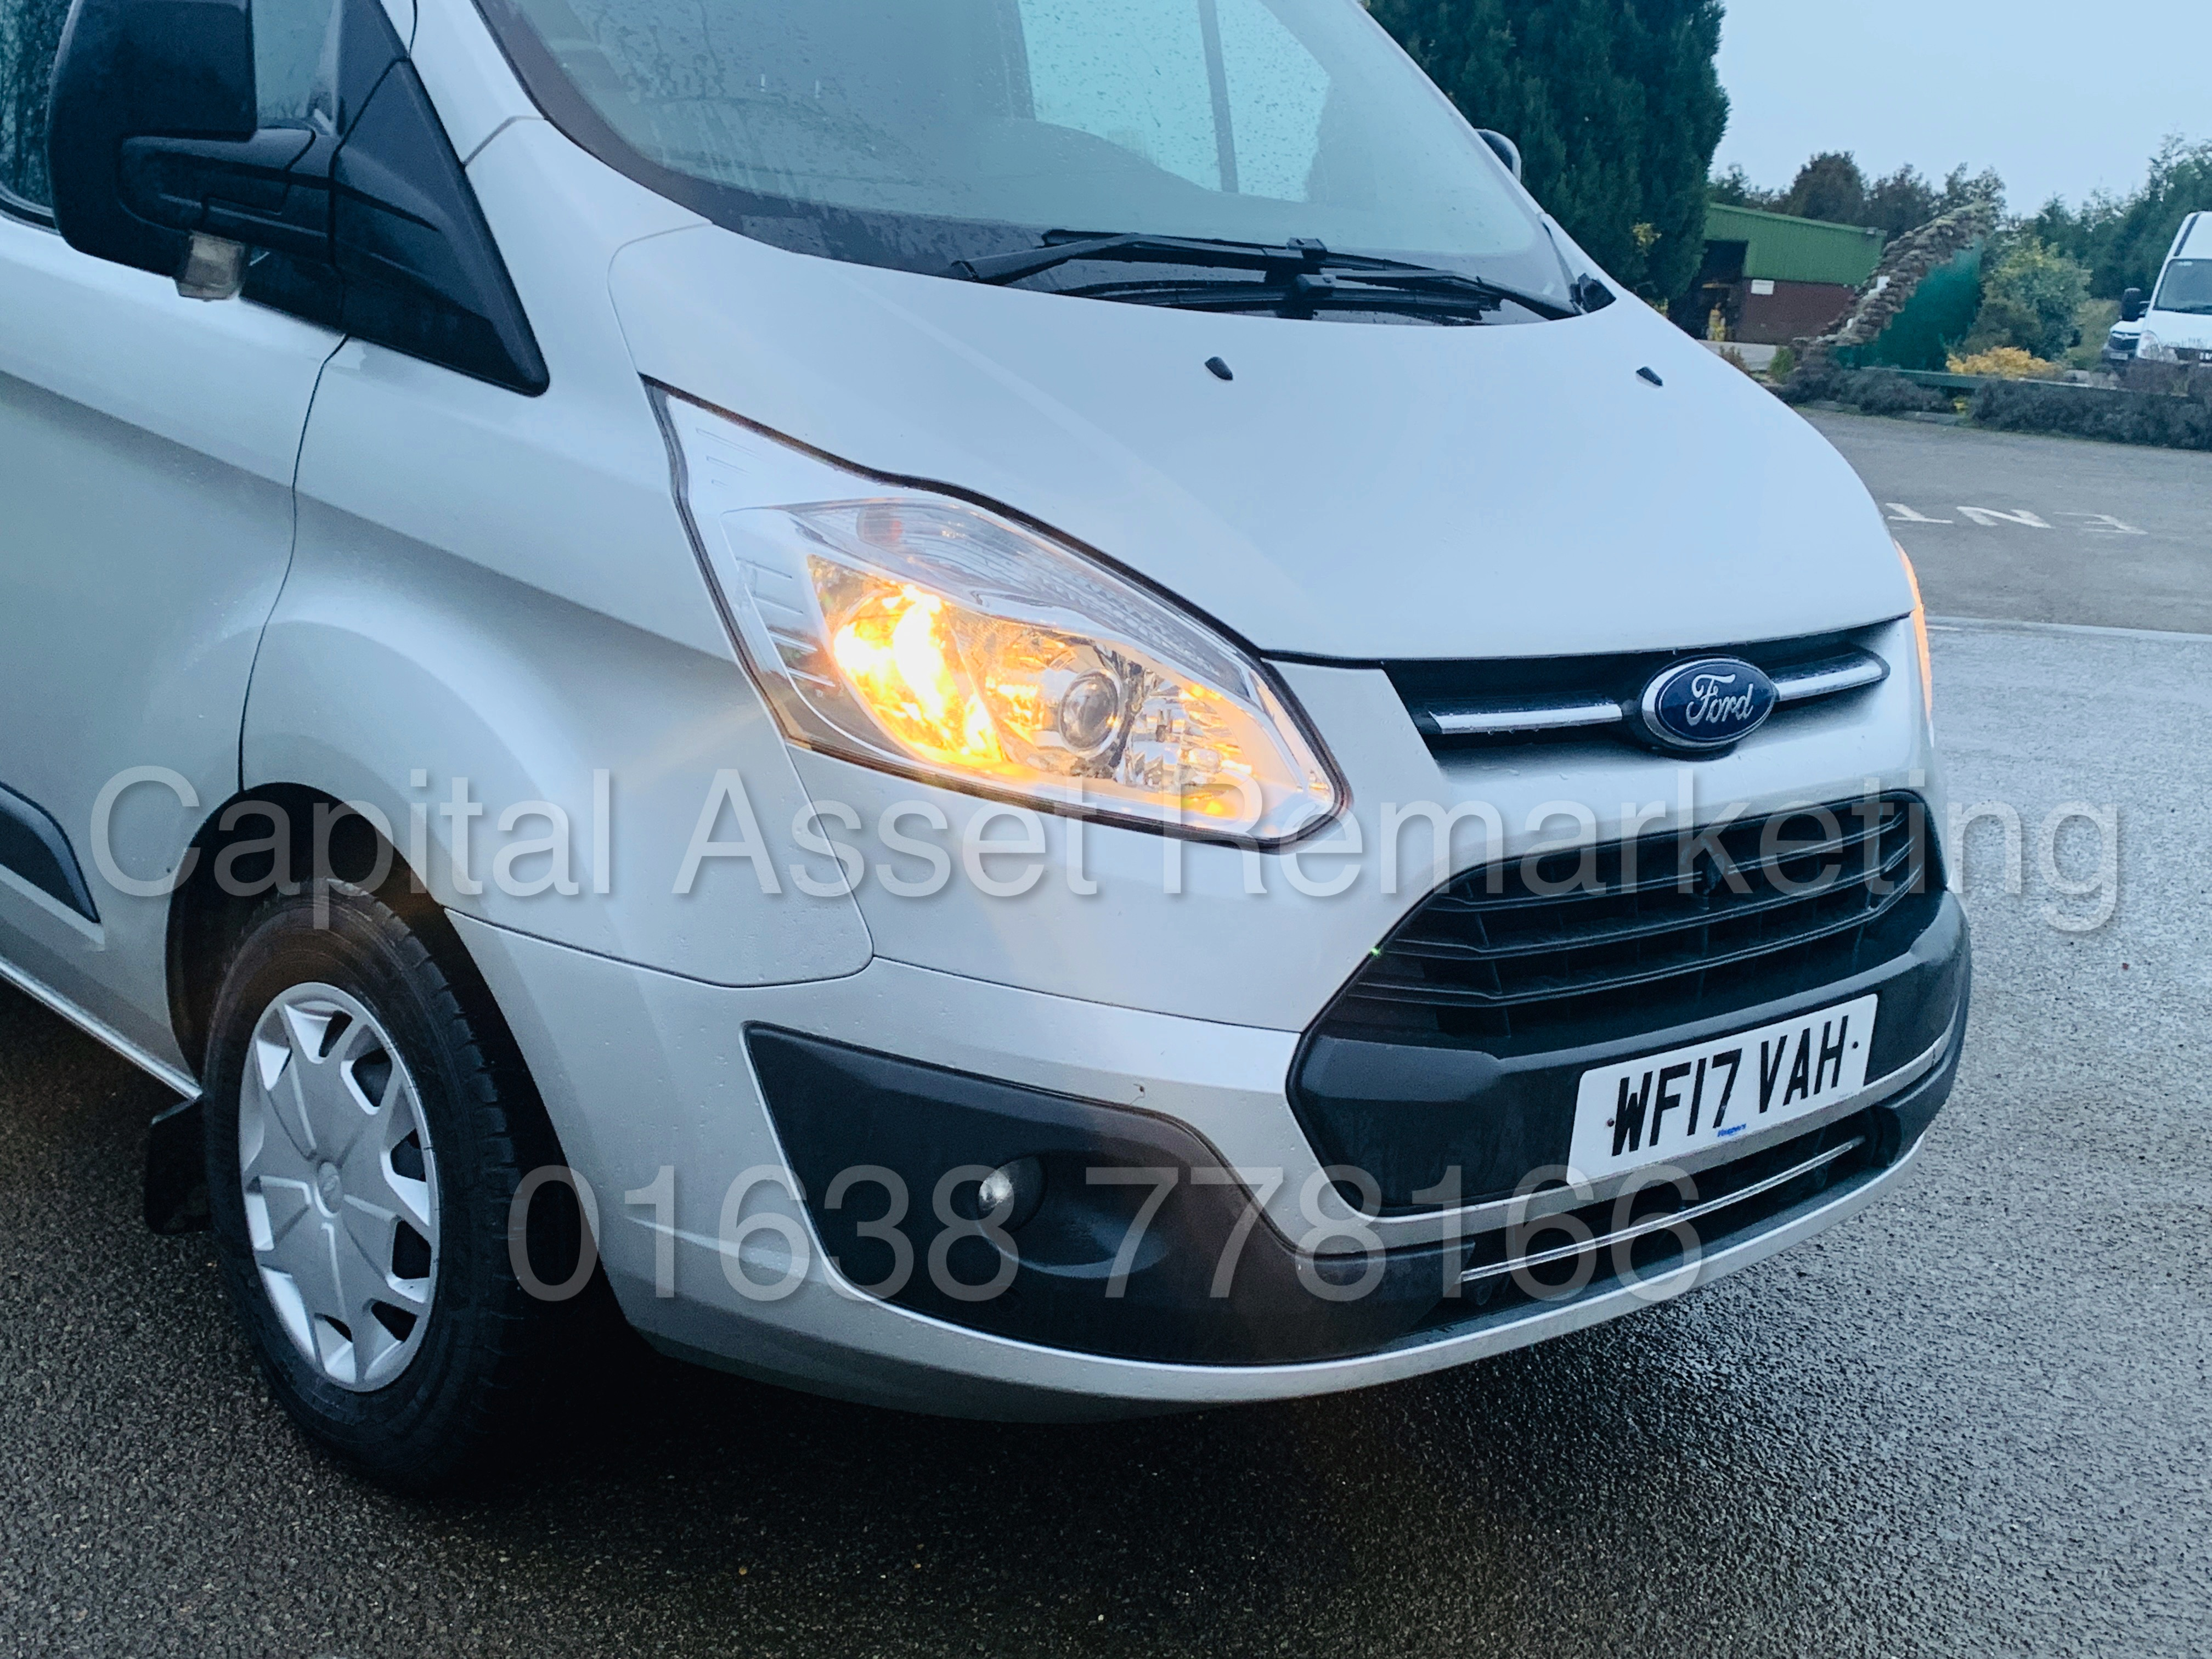 (On Sale) FORD TRANSIT *TREND* 290 SWB (2017 - EURO 6 / AD-BLUE) '2.0 TDCI - 130 BHP - 6 SPEED' - Image 13 of 41